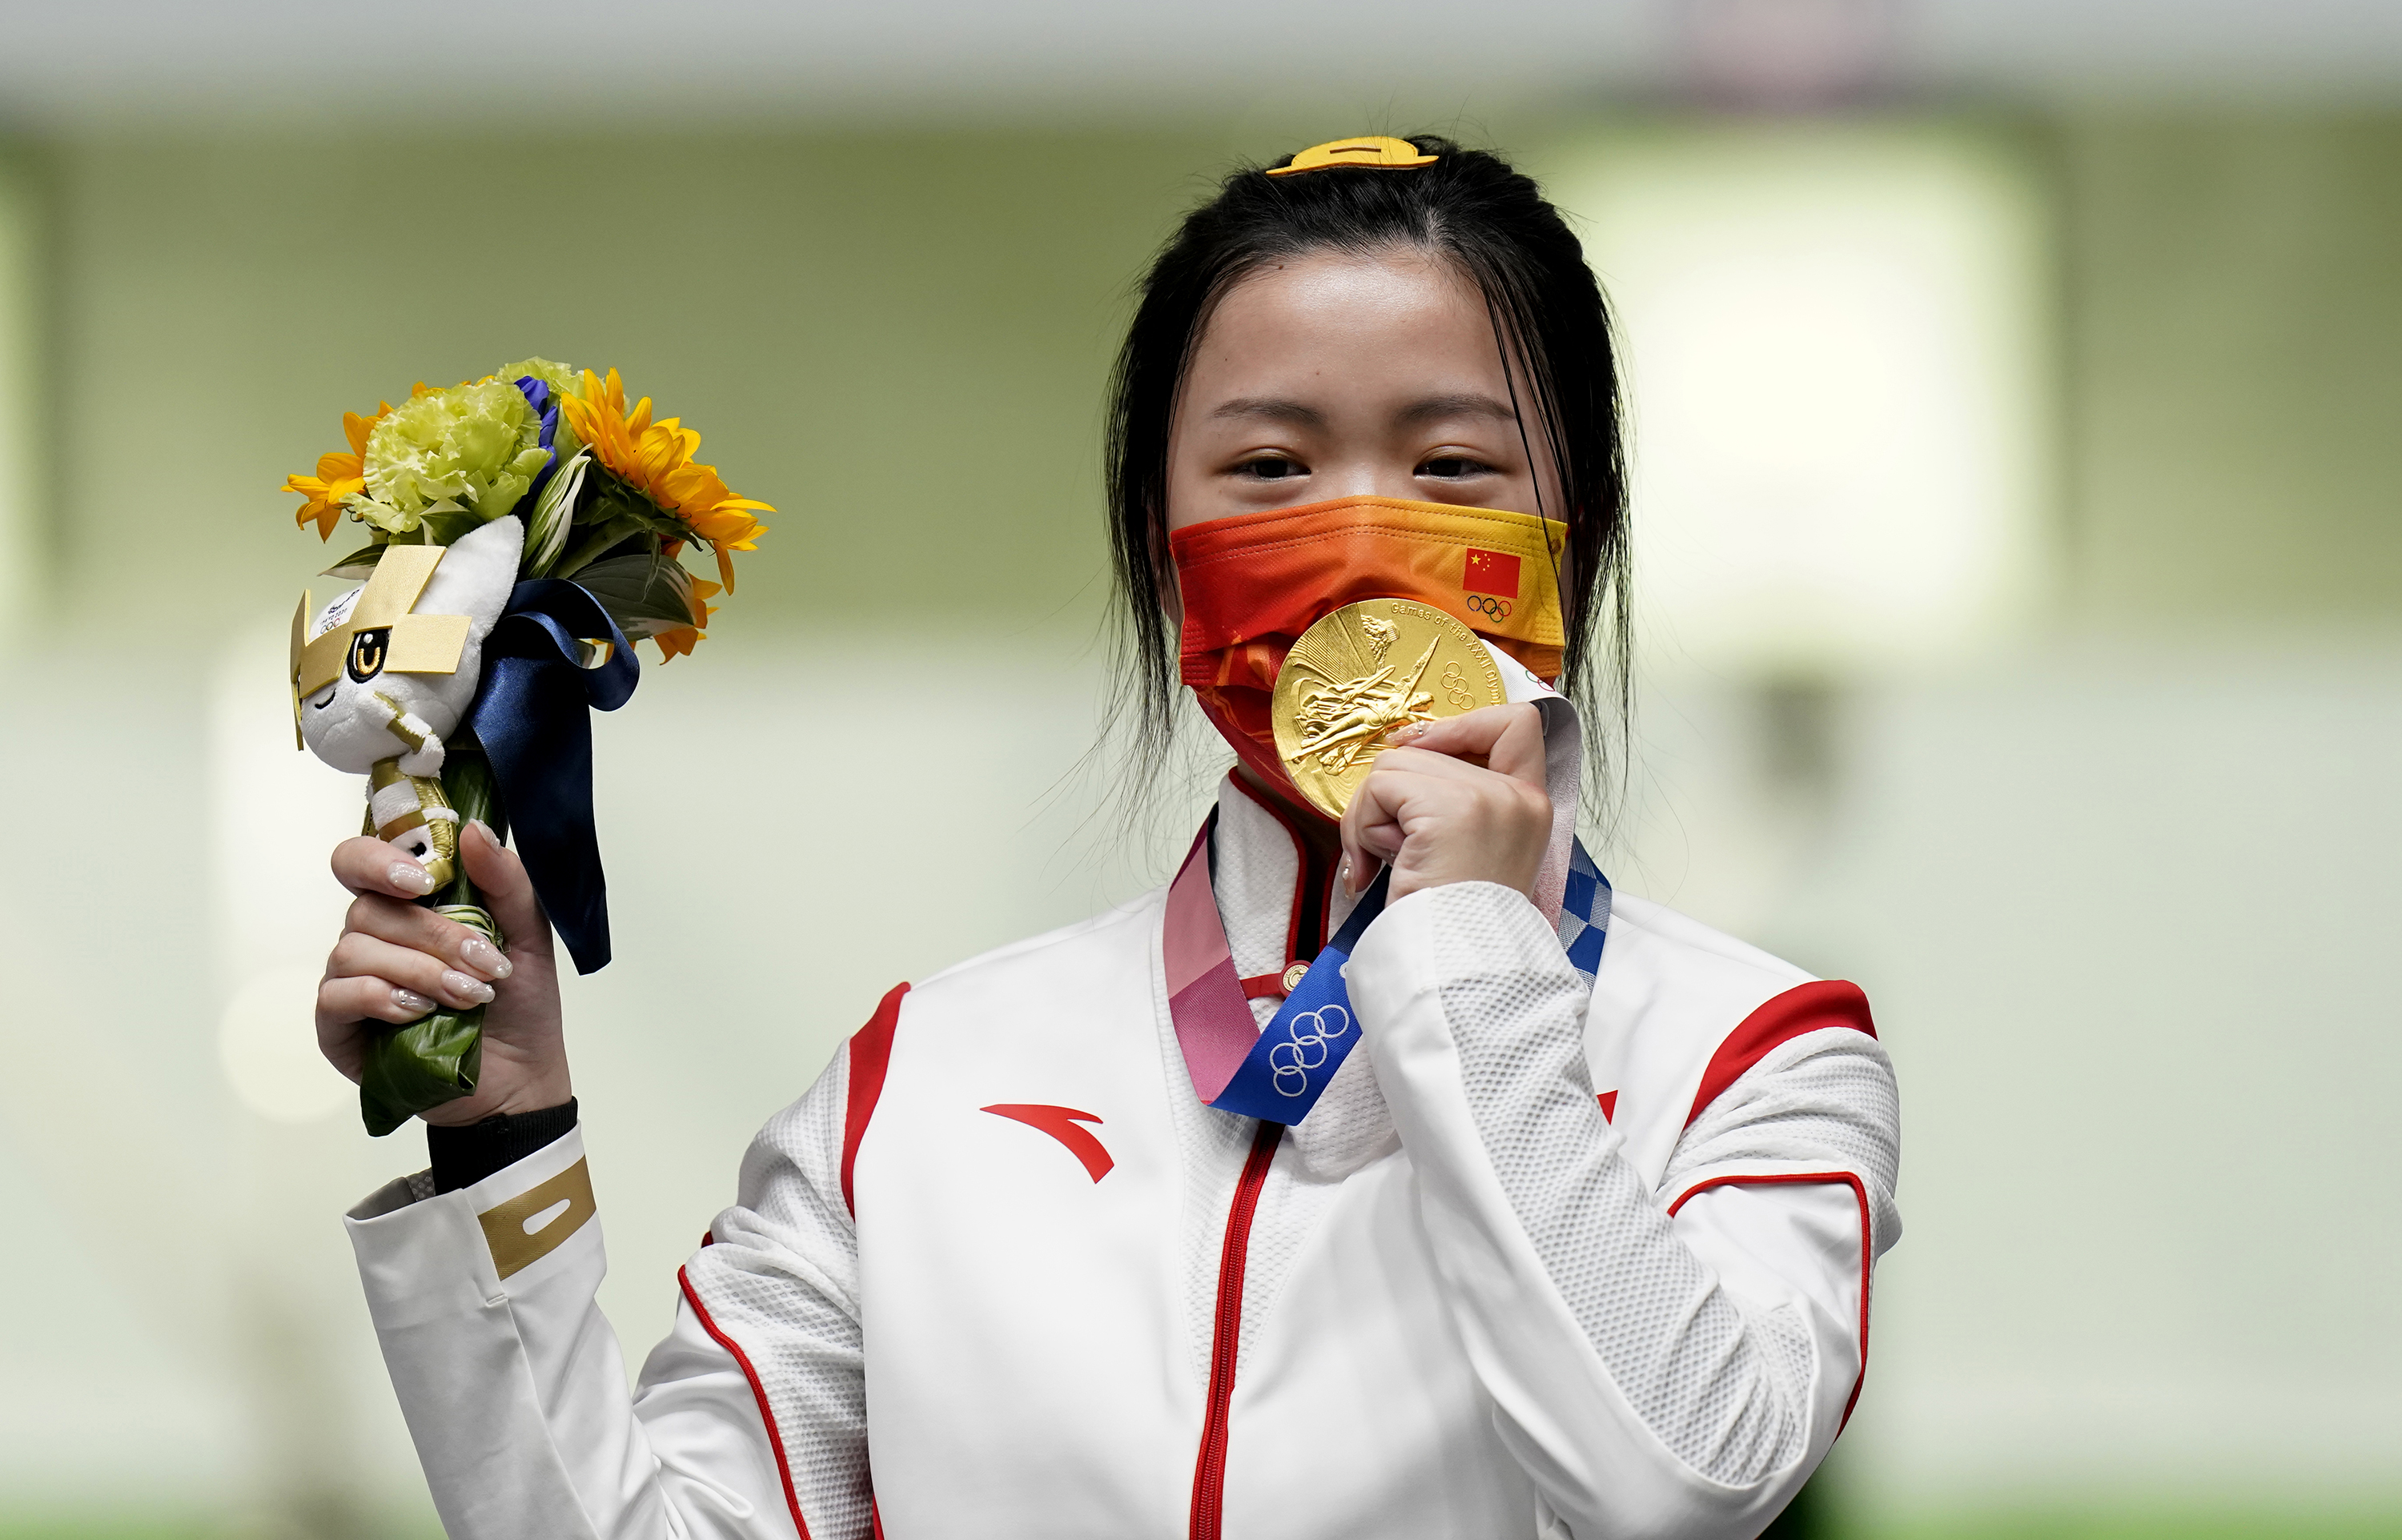 China's Yang Qian celebrates with her gold medal after winning the women's 10m air rifle on Saturday, July 24.